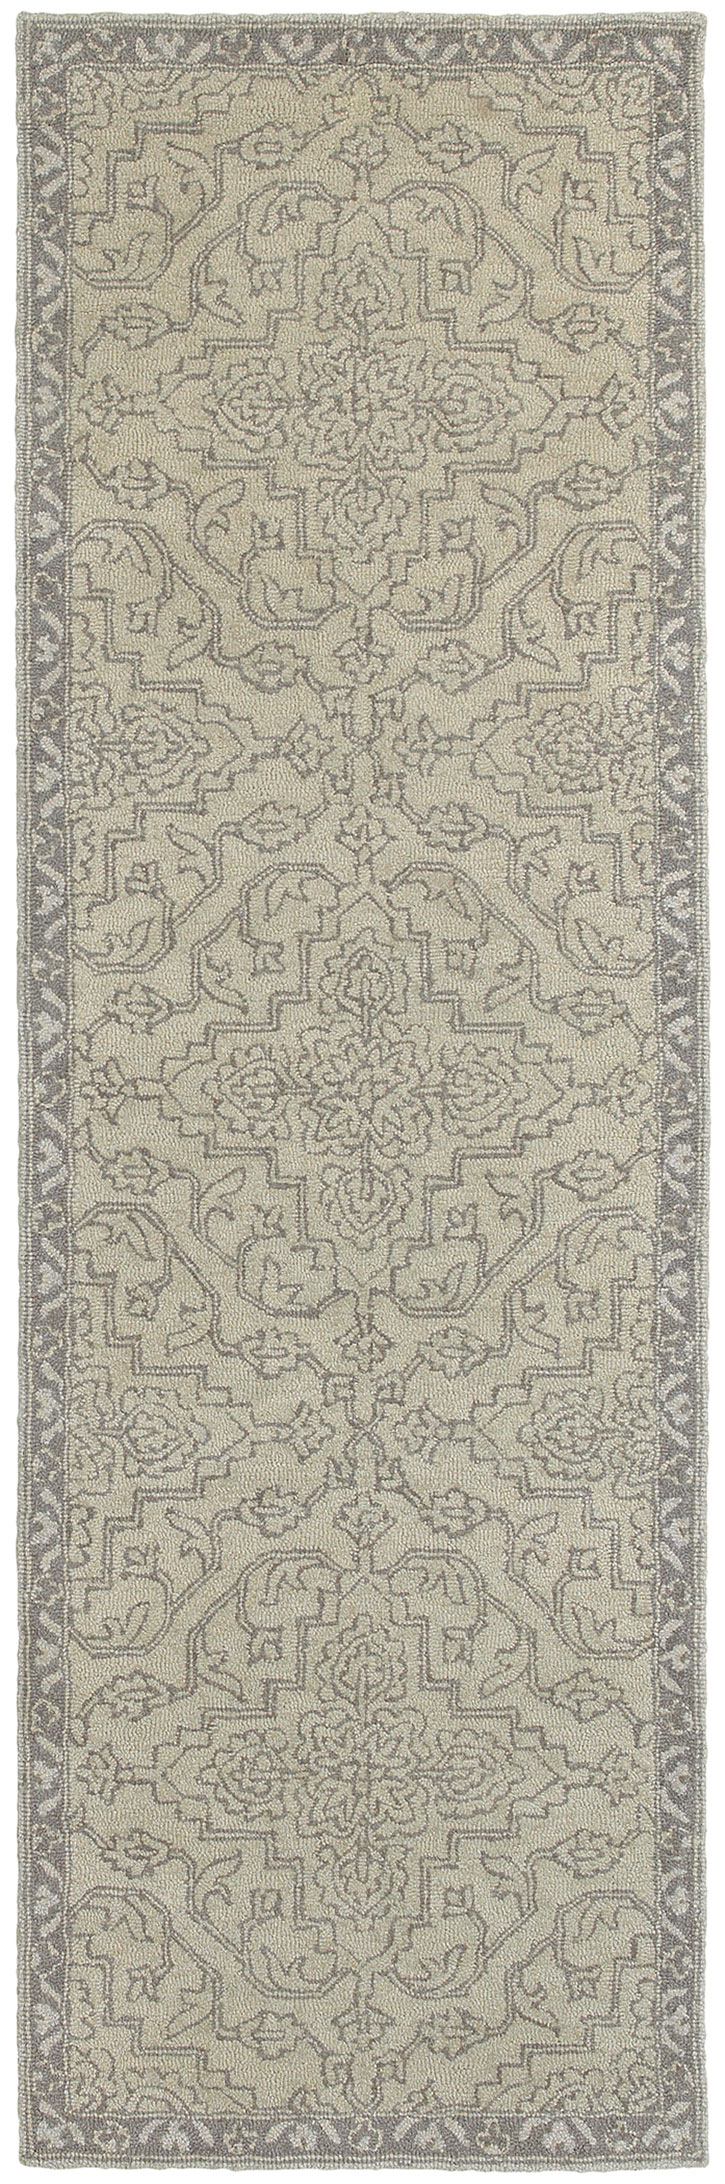 Oriental Weavers Manor 81206 Area Rug Carpetmart Com